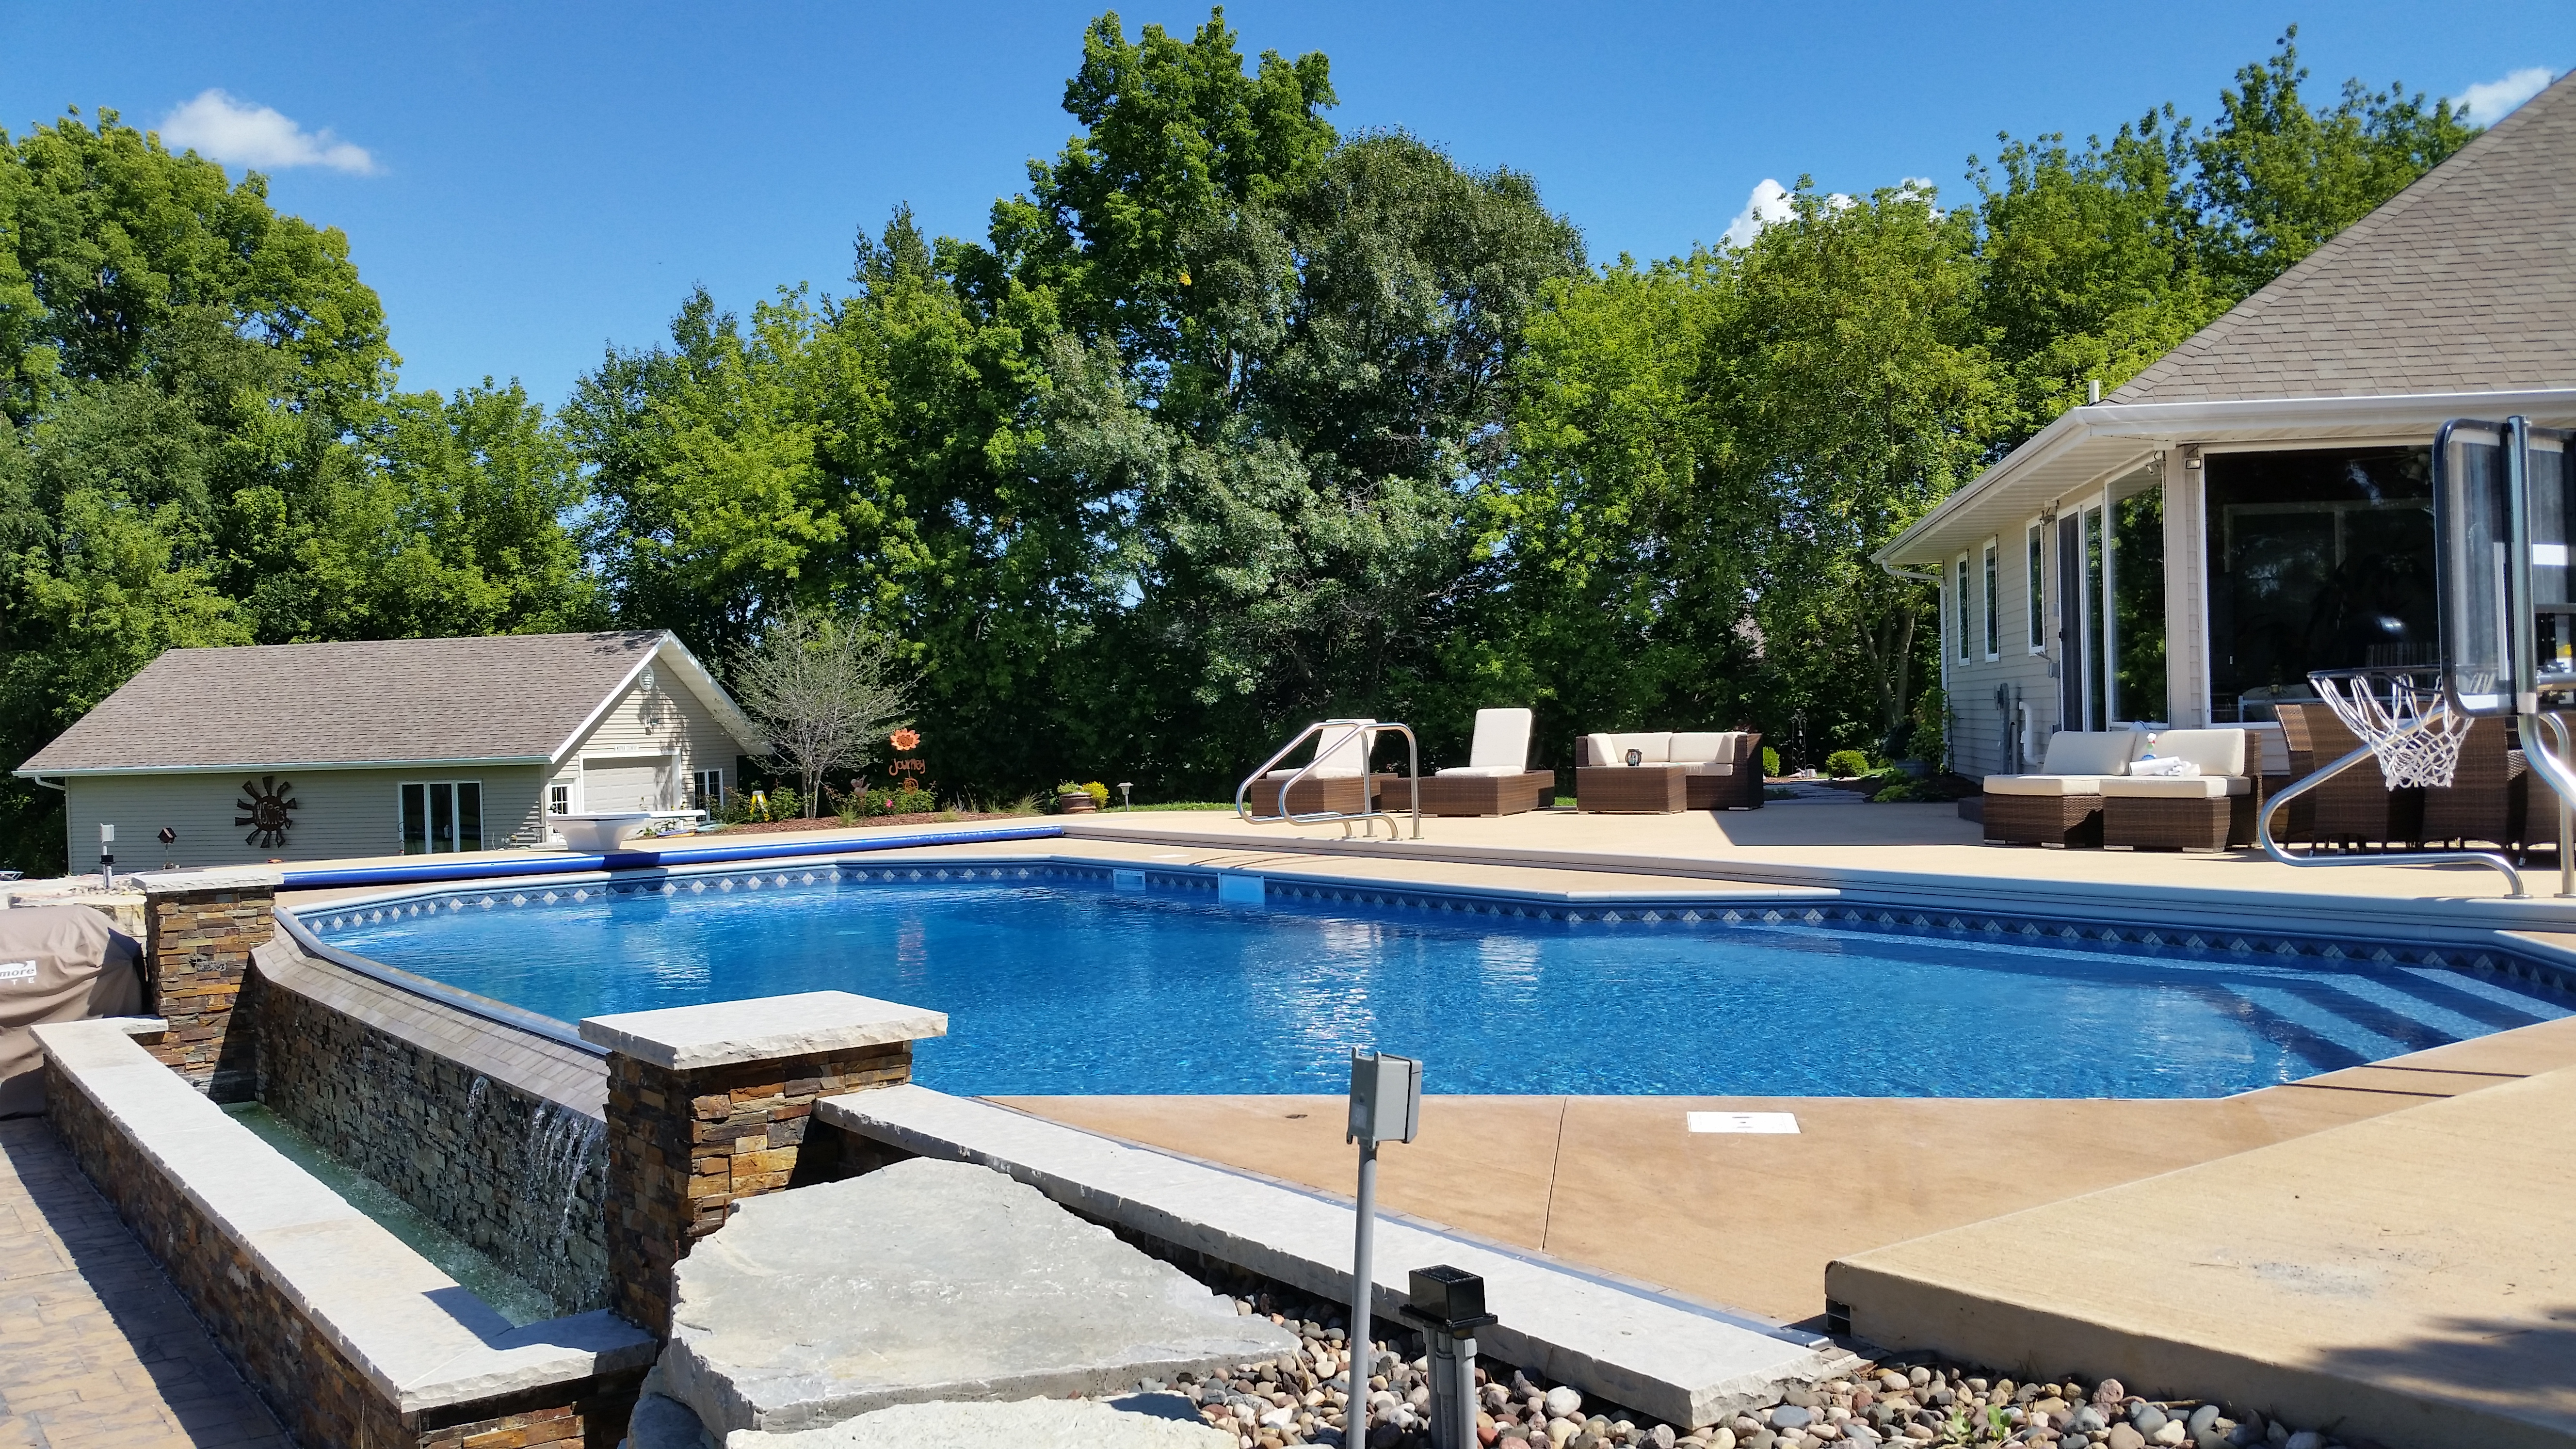 Spring's Pools and Spas has been designing, building, and installing custom in-ground pools, spas, fences, decks, aquariums, and more throughout southeast Wisconsin, including Plymouth, Sheboygan, Manitowoc, and Fond du Lac, and Illinois since 1984.